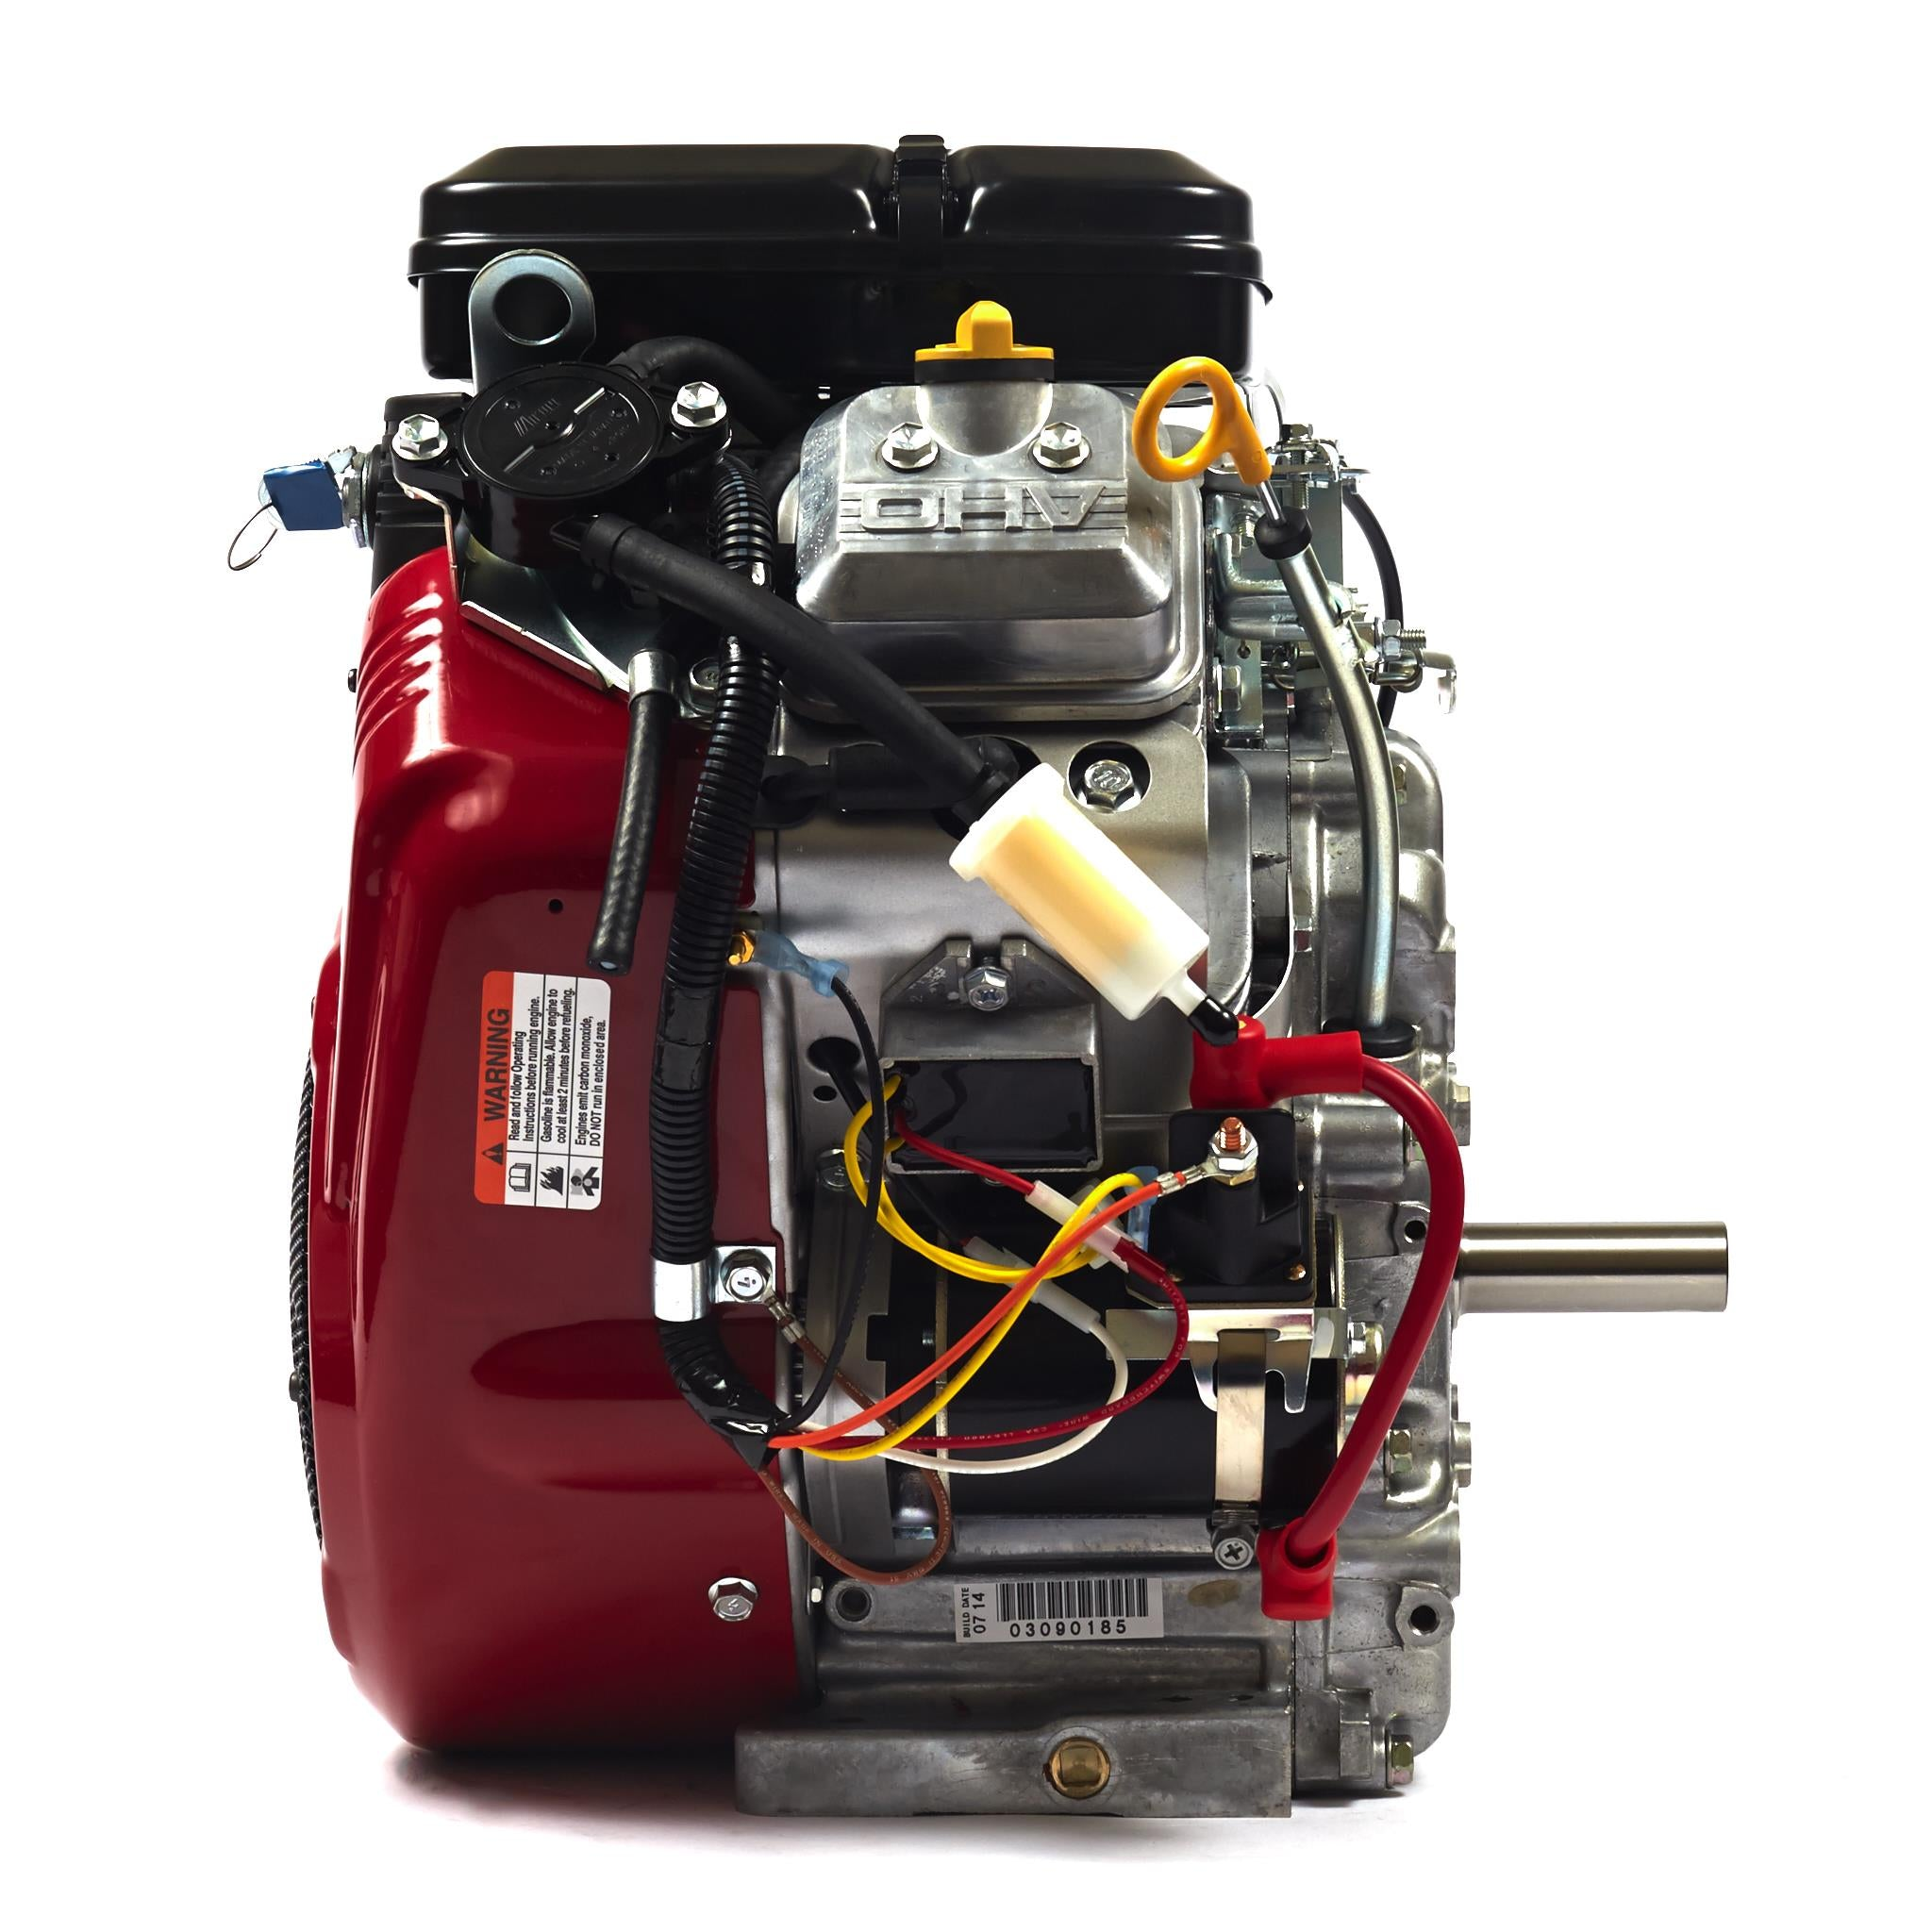 Briggs And Stratton 18 Hp Vanguard Engine 356447 3079 G1 Outdoor Electrical Wiring